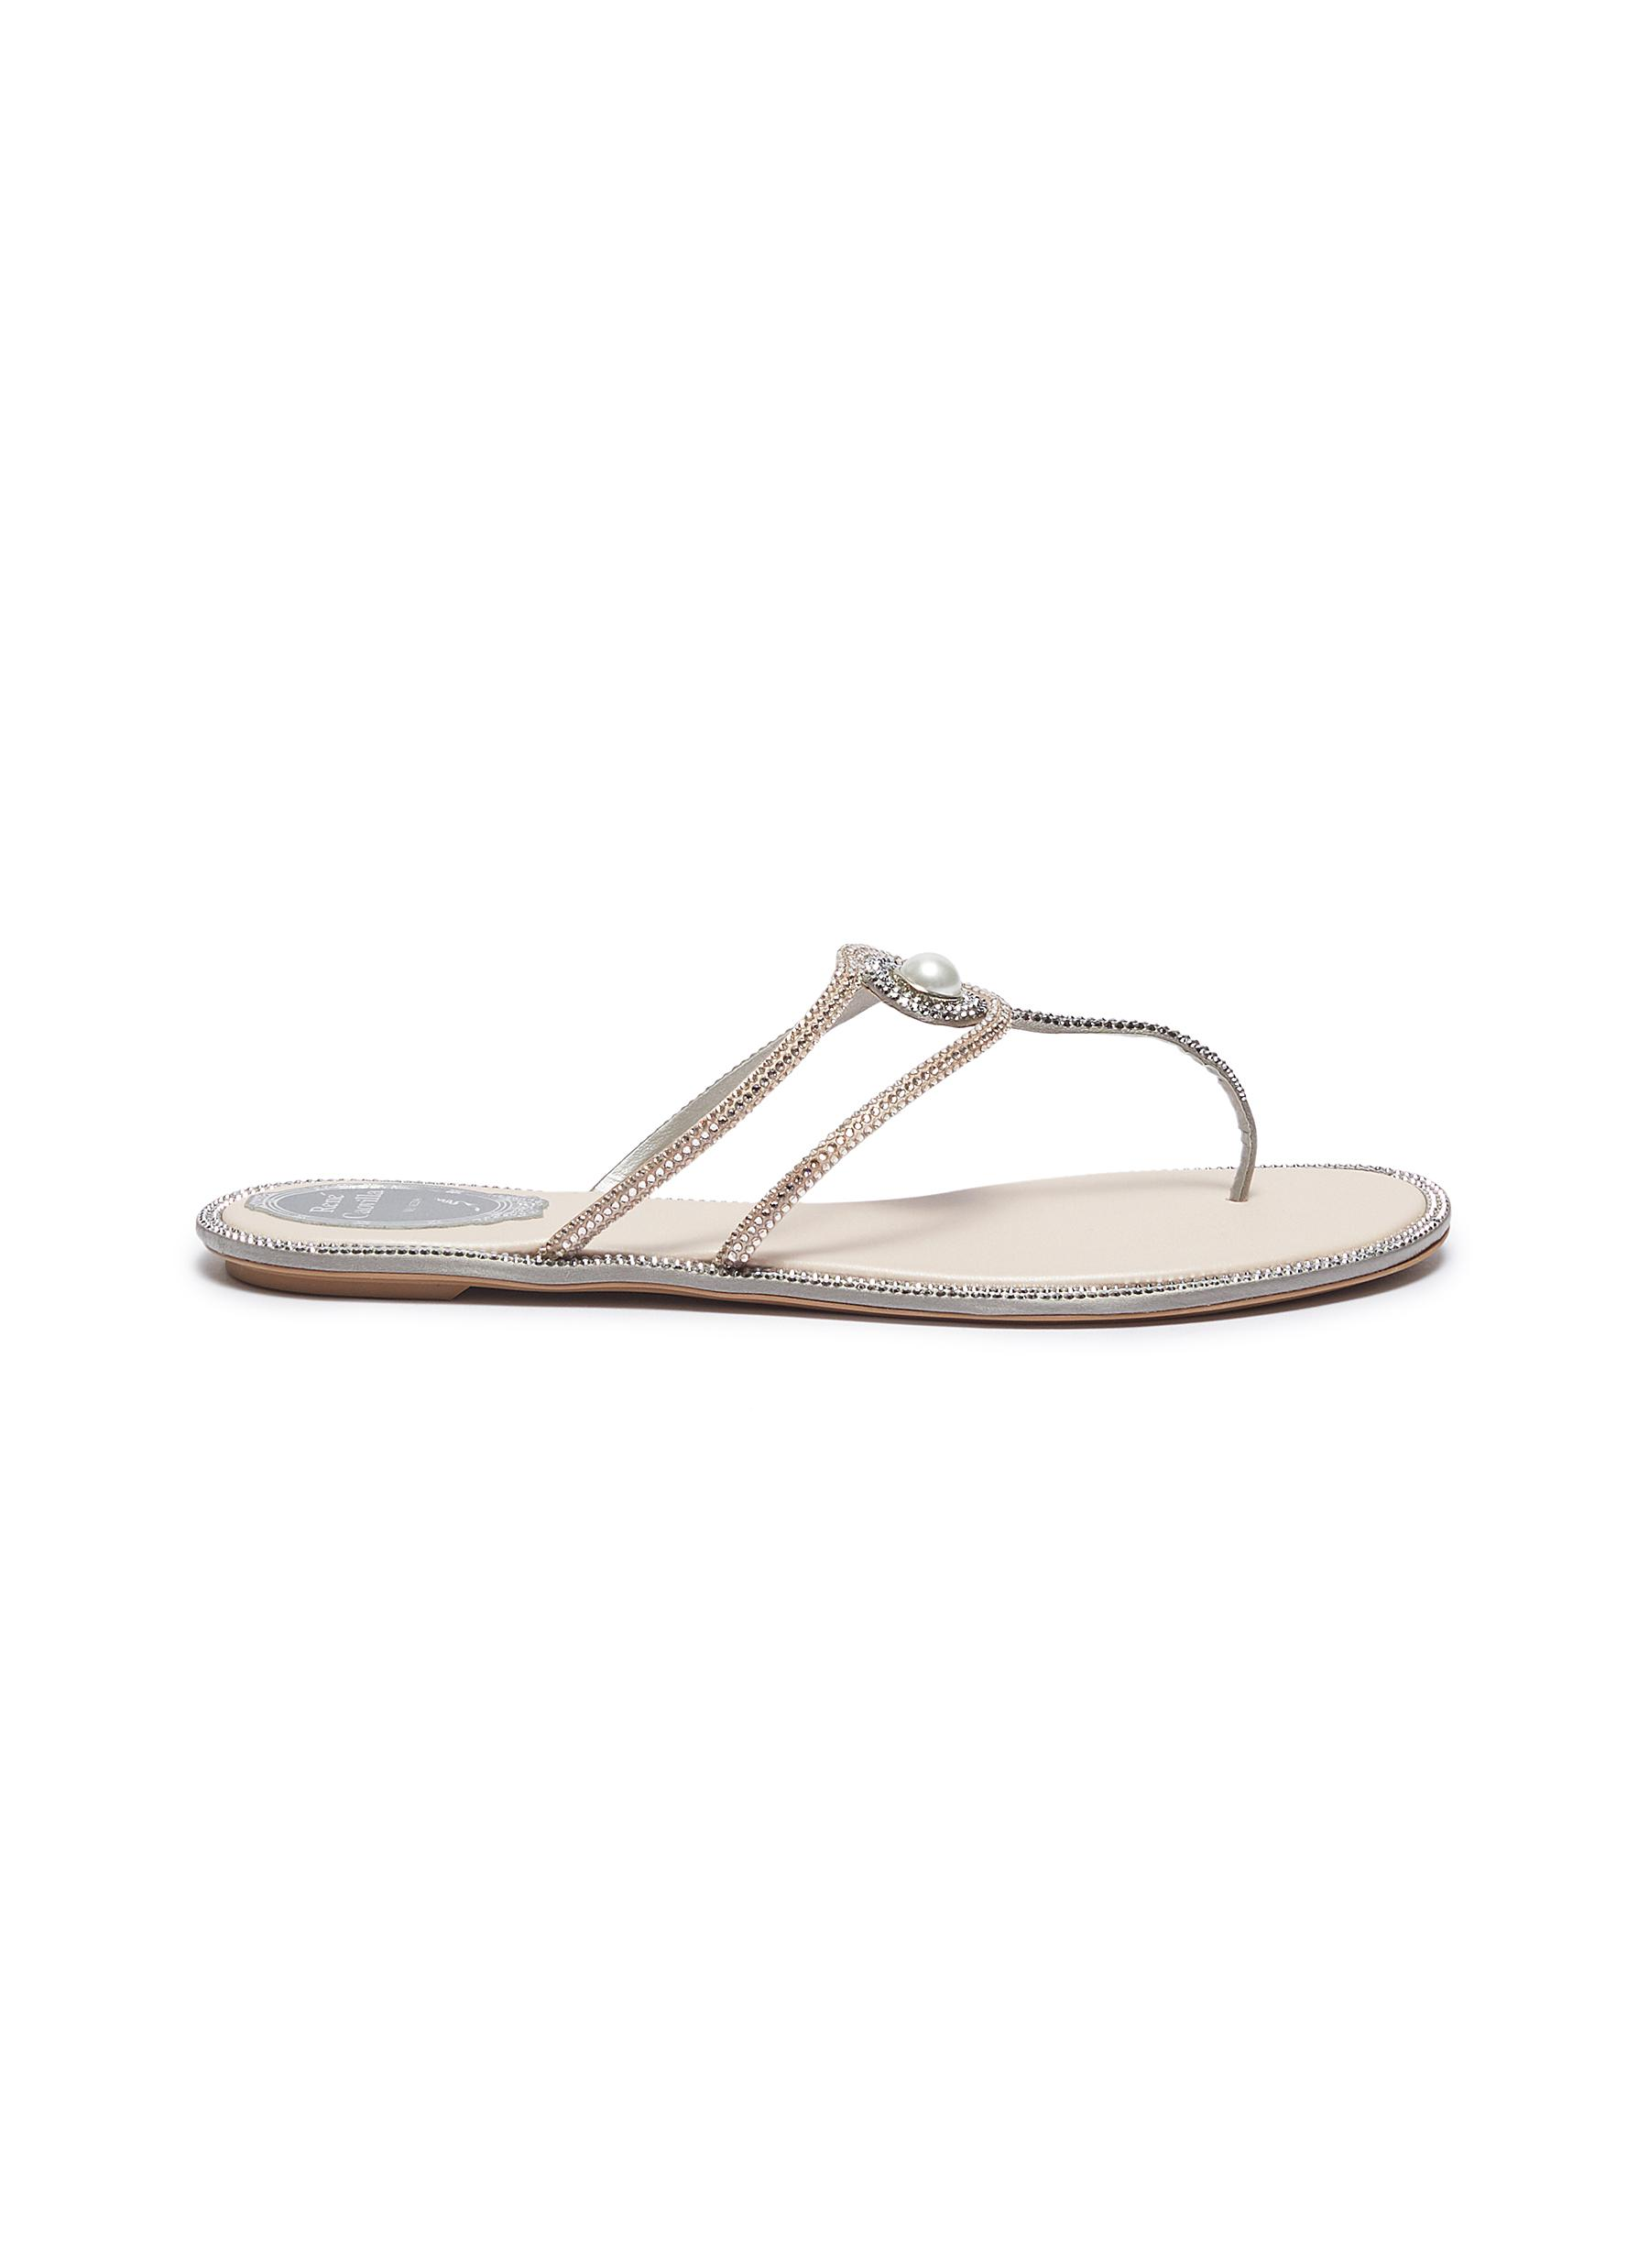 Faux pearl strass satin thong sandals by René Caovilla